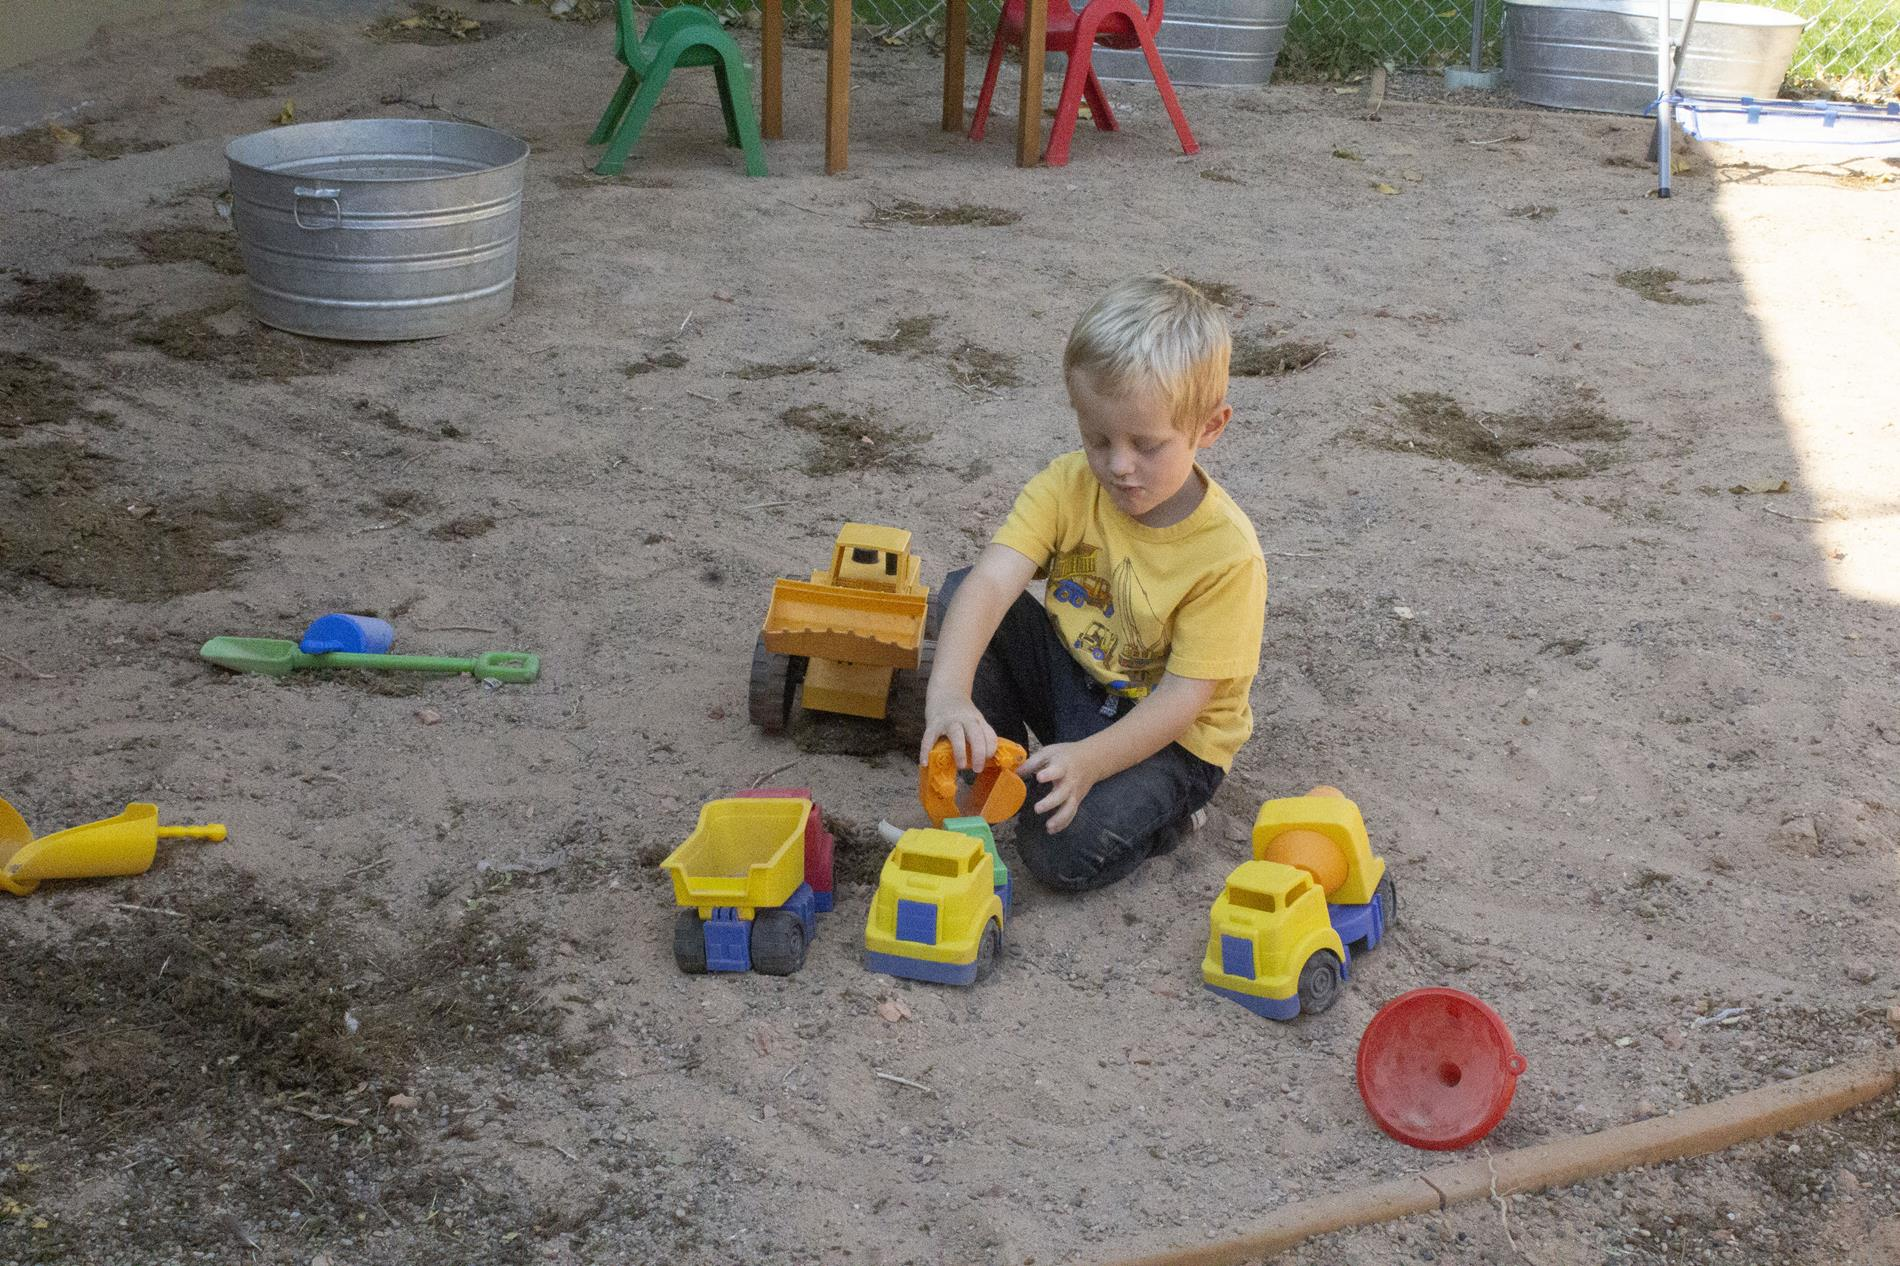 preschool kid playing with toys